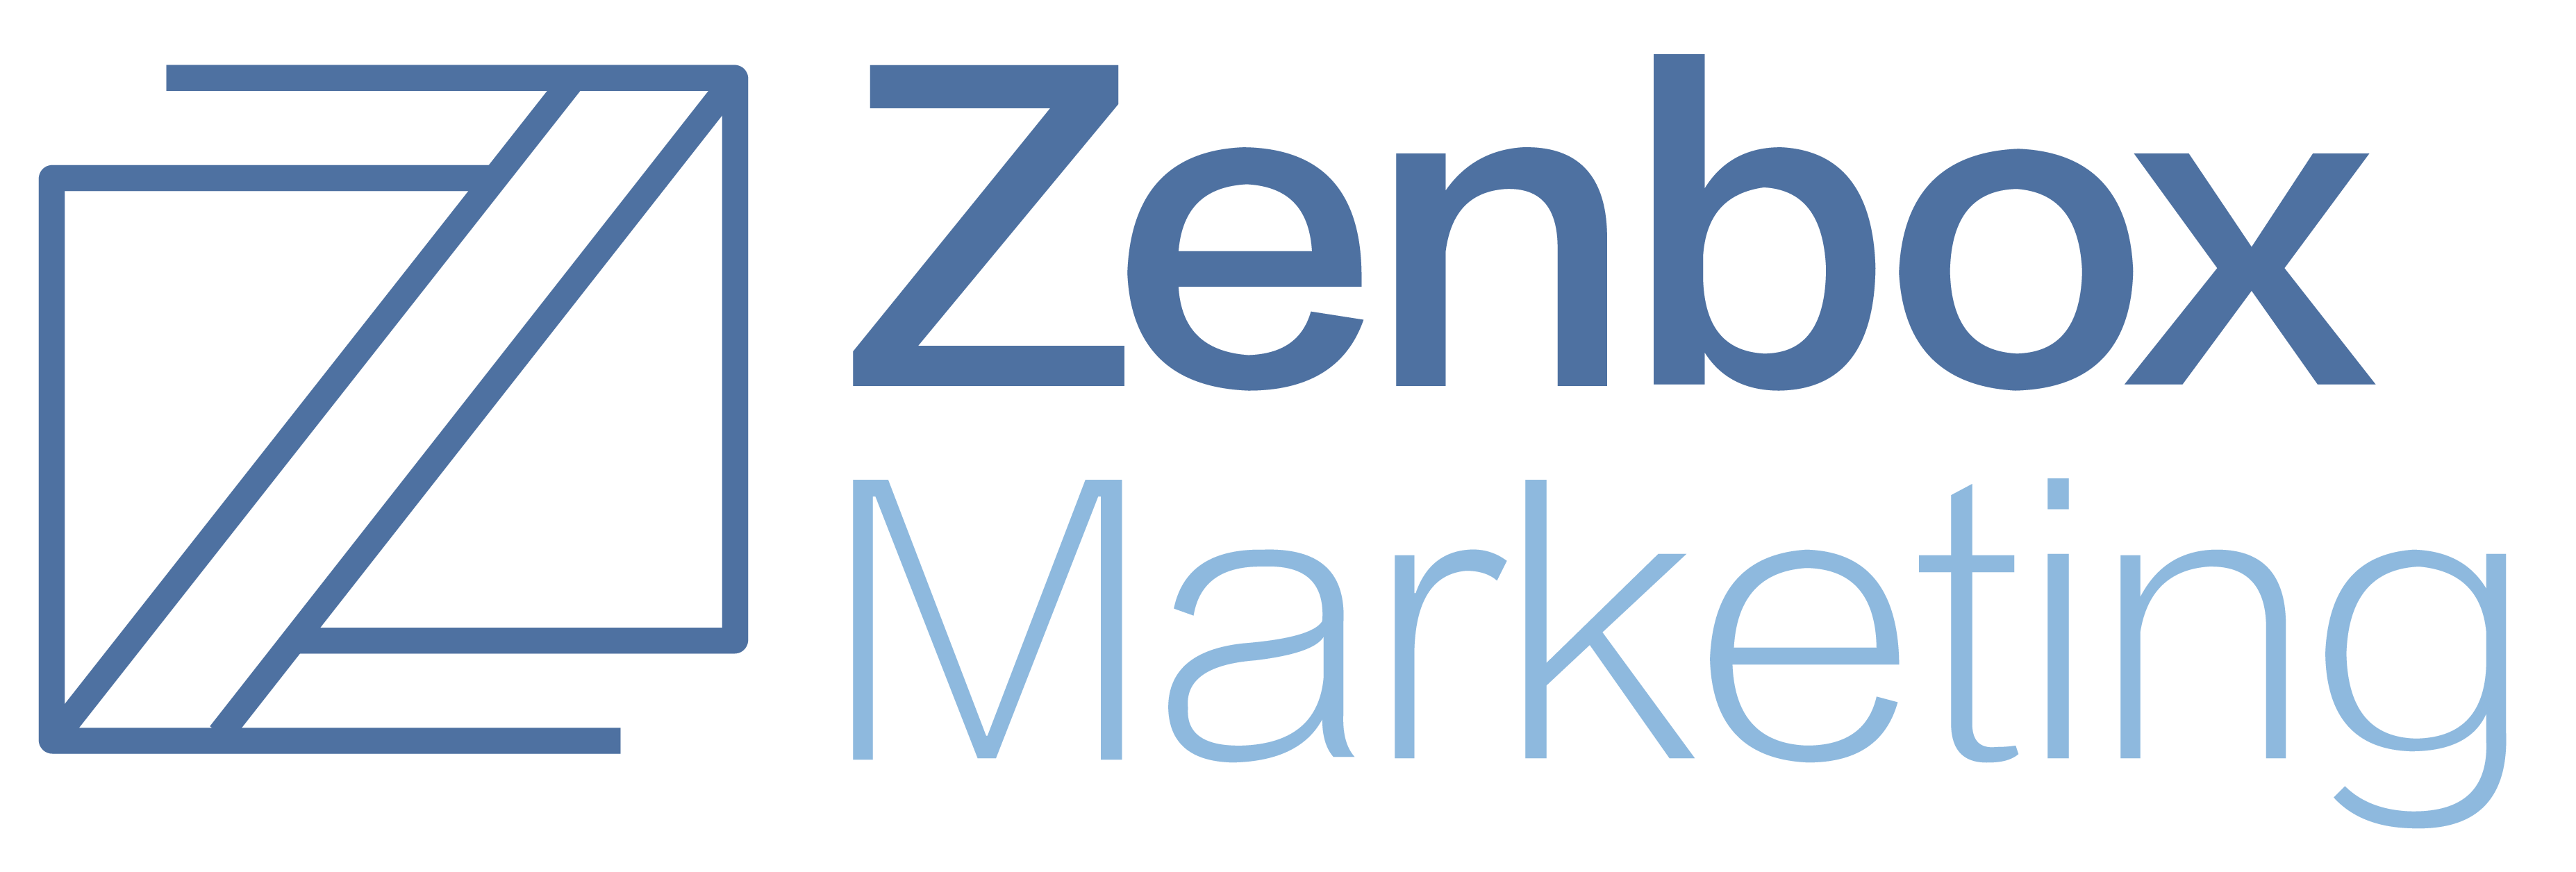 Zenbox Marketing